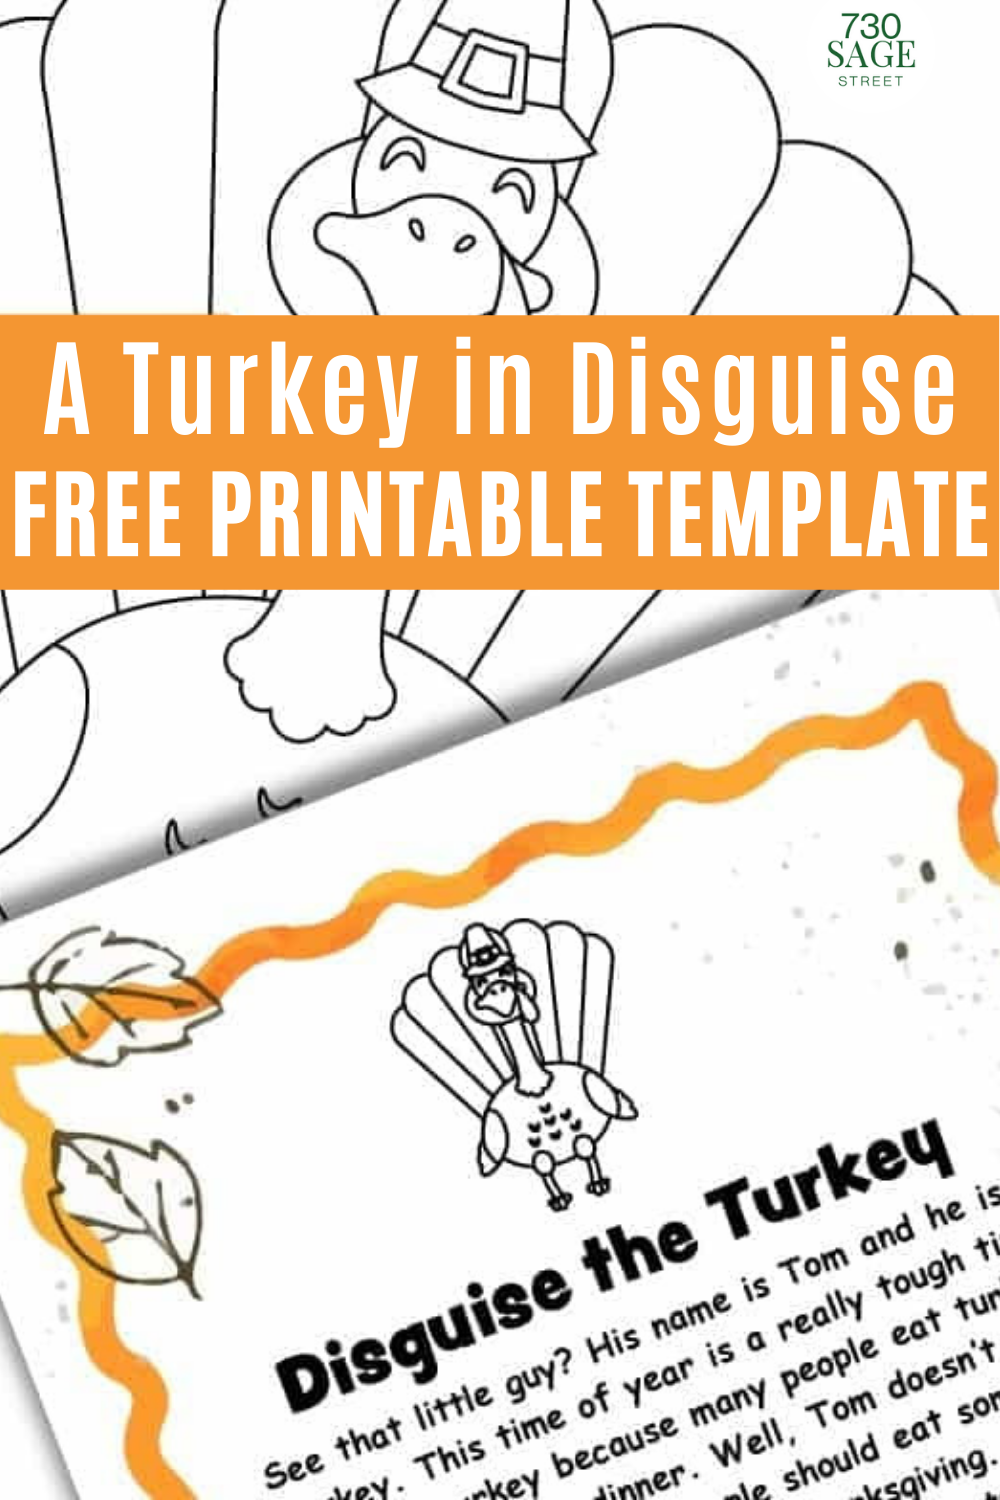 A Turkey in Disguise Project Free Printable Template -   18 disguise a turkey project printable template ideas